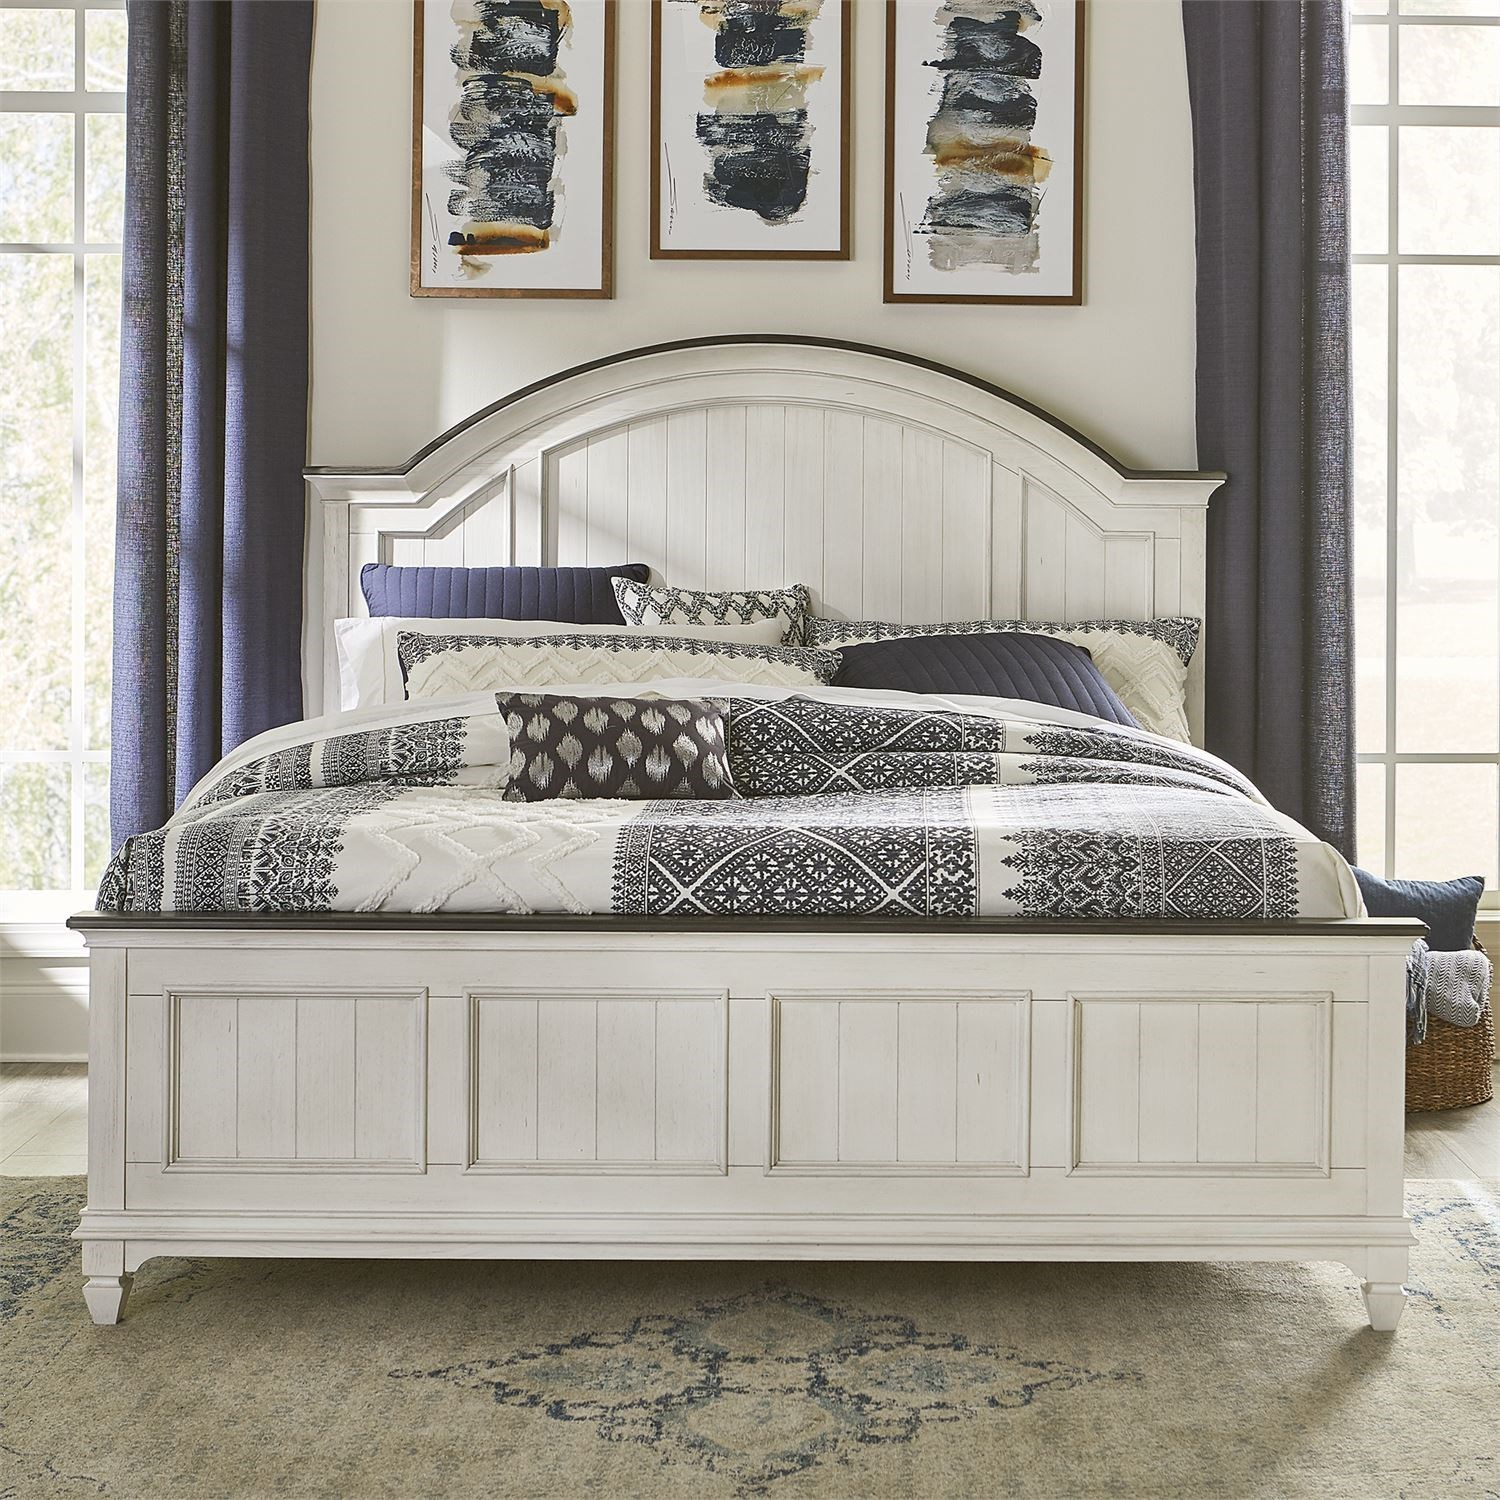 Allyson Park King Arched Panel Bed by Liberty Furniture at Van Hill Furniture